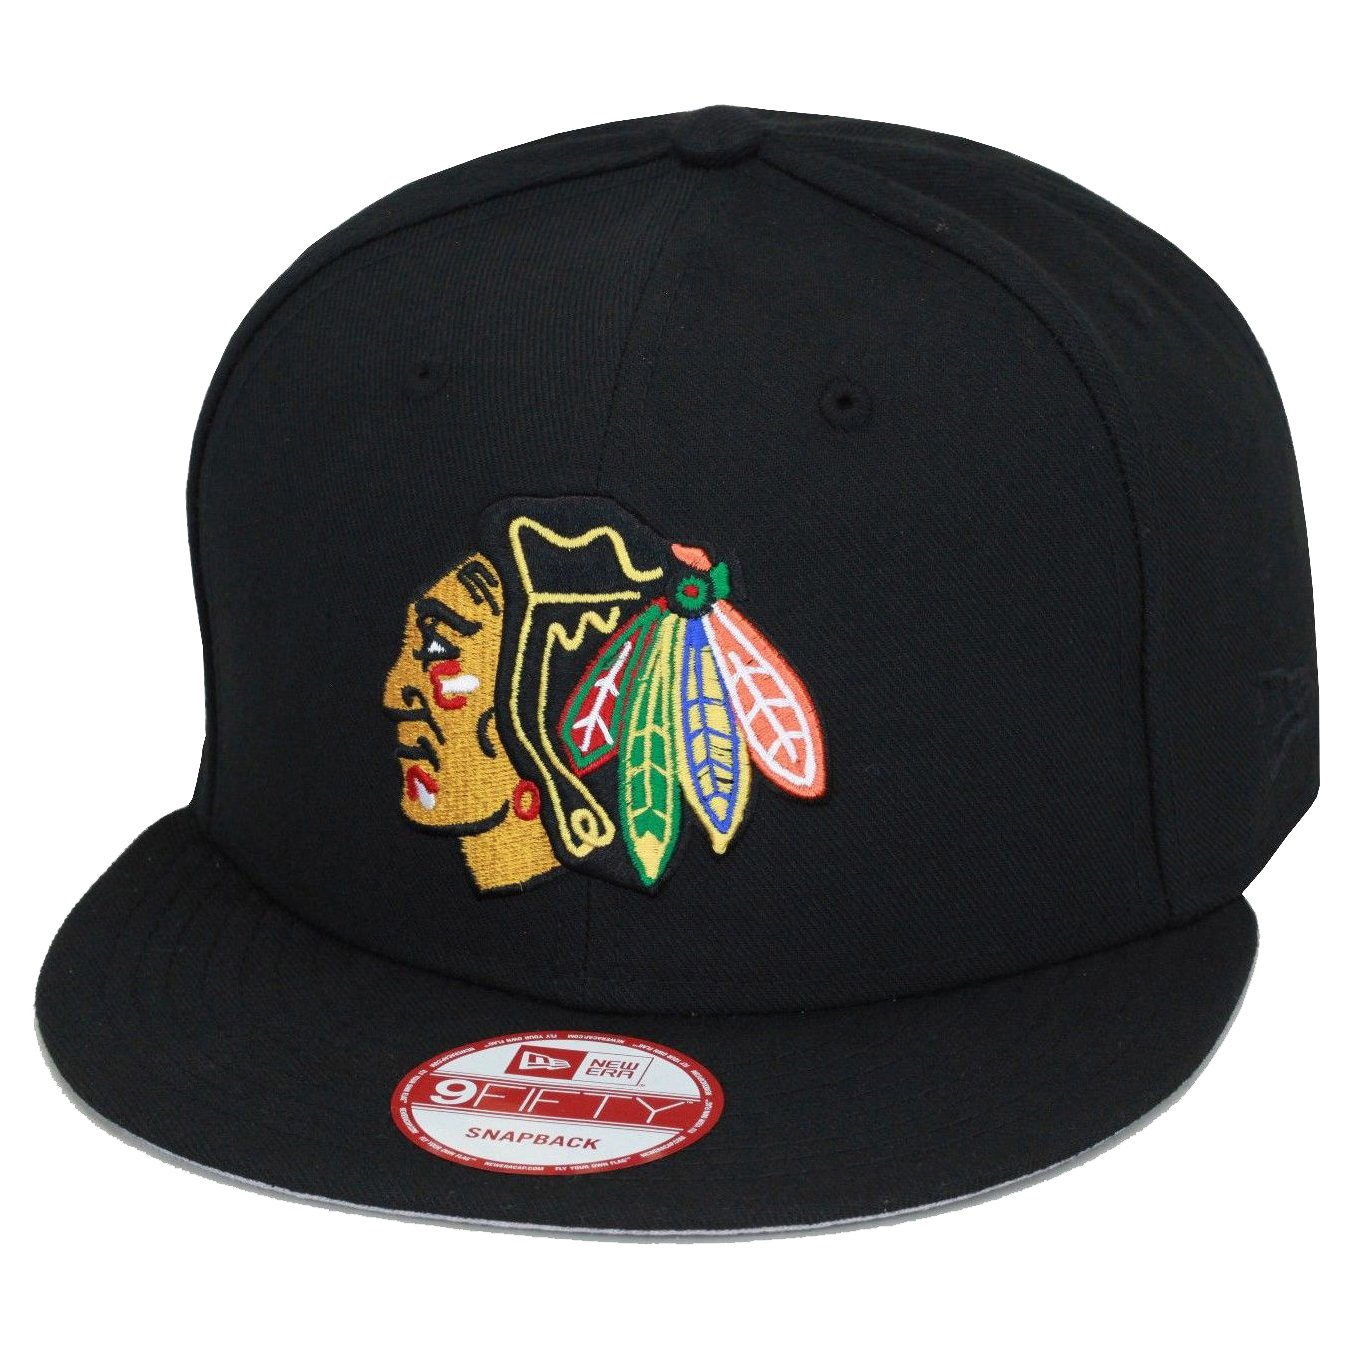 New Era 9 Fifty Chicago blackhakwsスナップバック帽子キャップブラック/ Regular Chief NHL   B01DJO6IOA